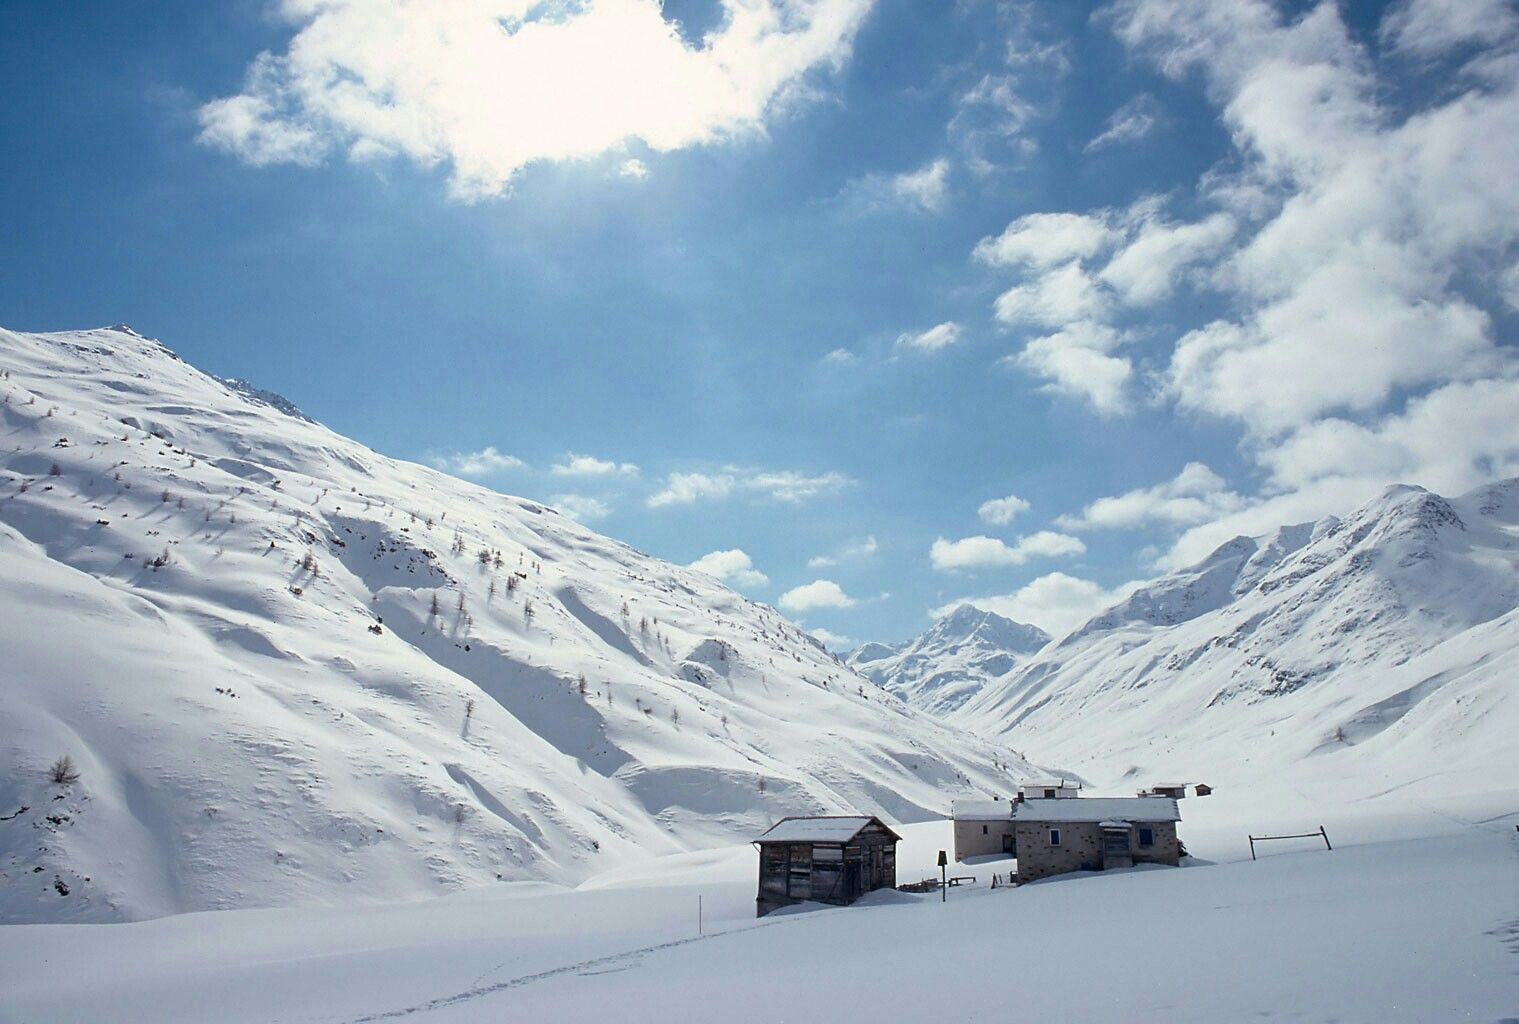 Livigno Lombardia My Mountains Alps Winter snow wallpaper 1519x1024